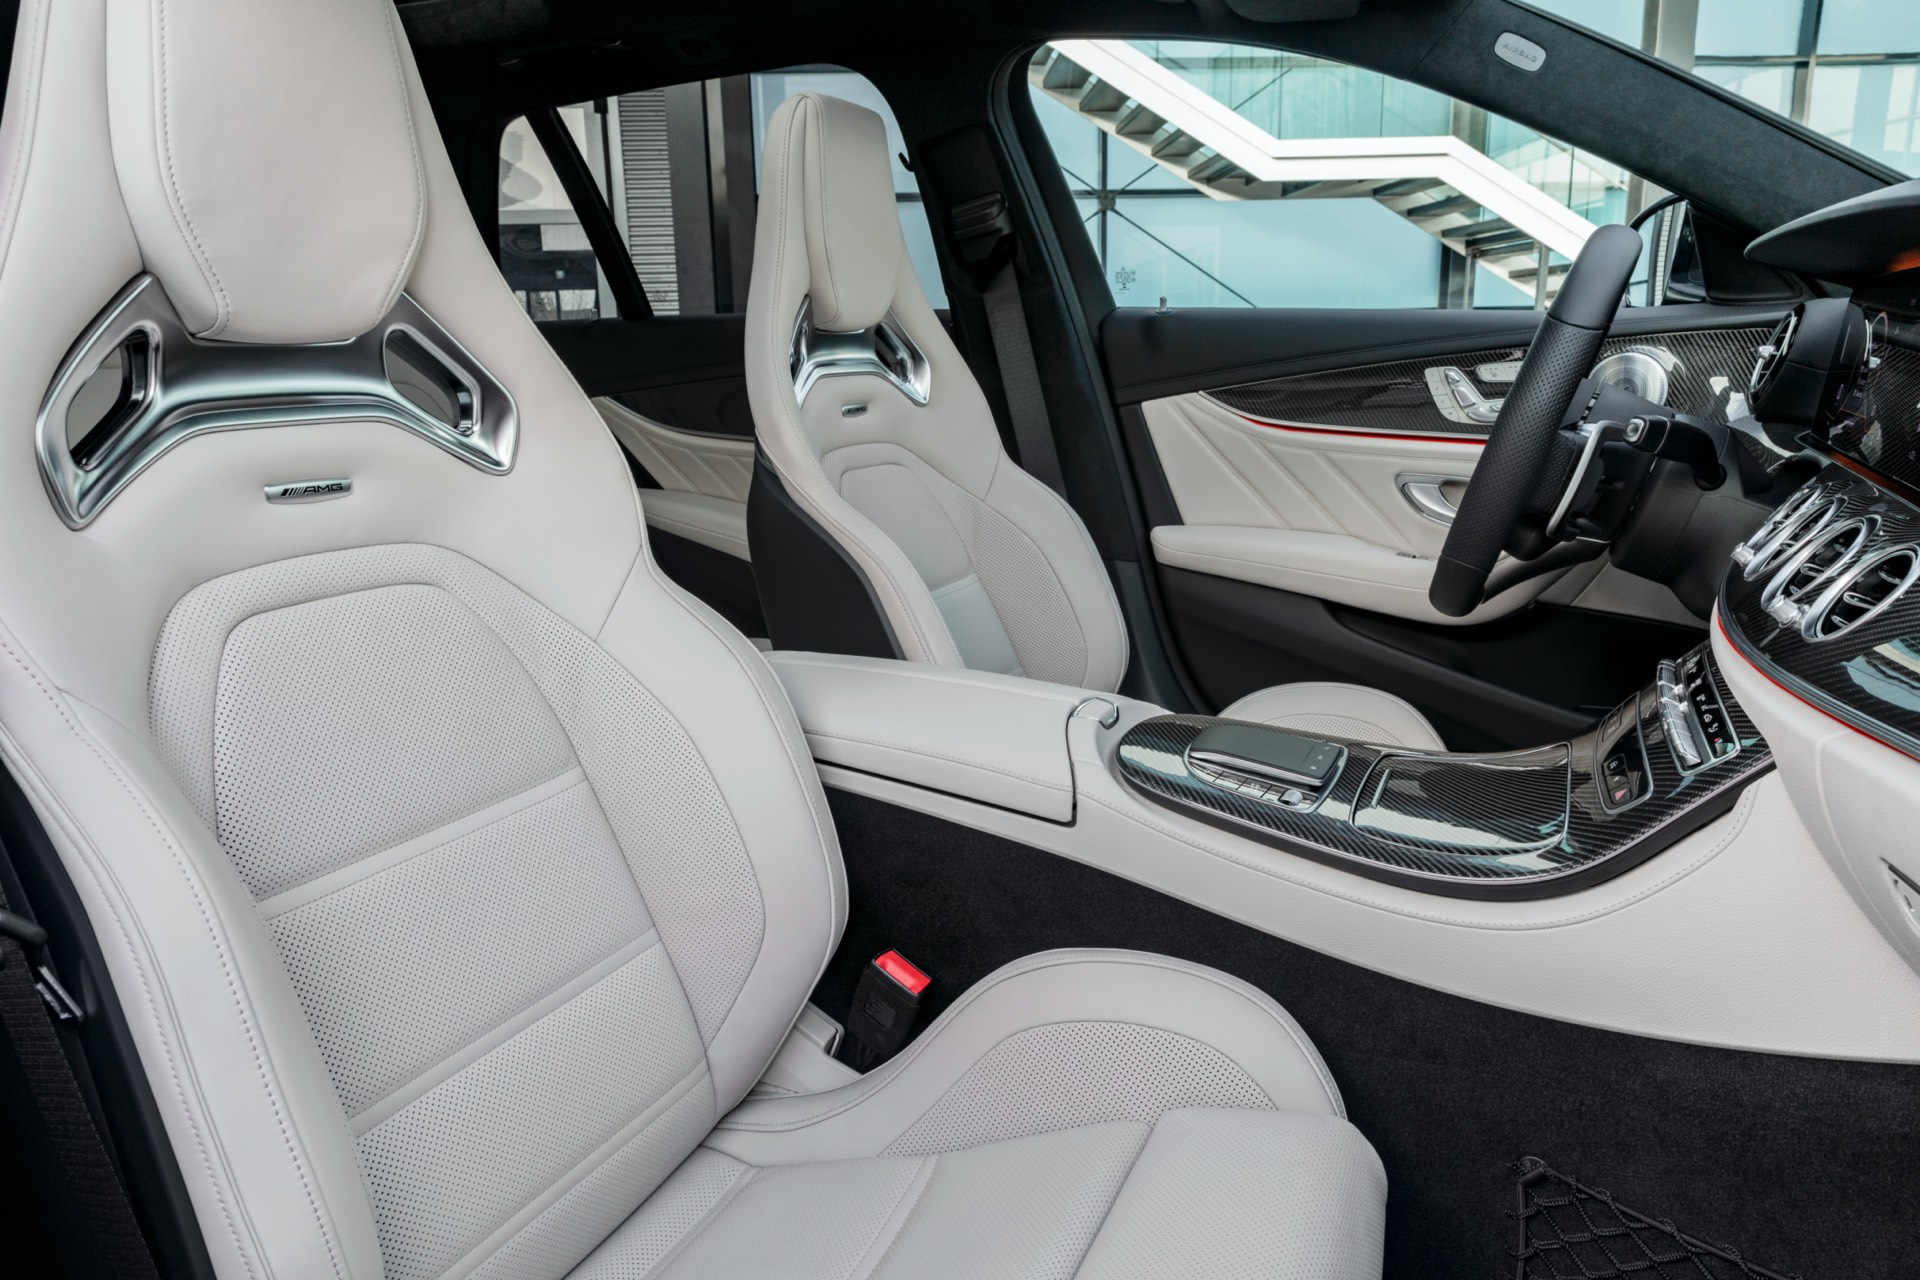 Mercedes-AMG E 53 Estate Facelift Seats